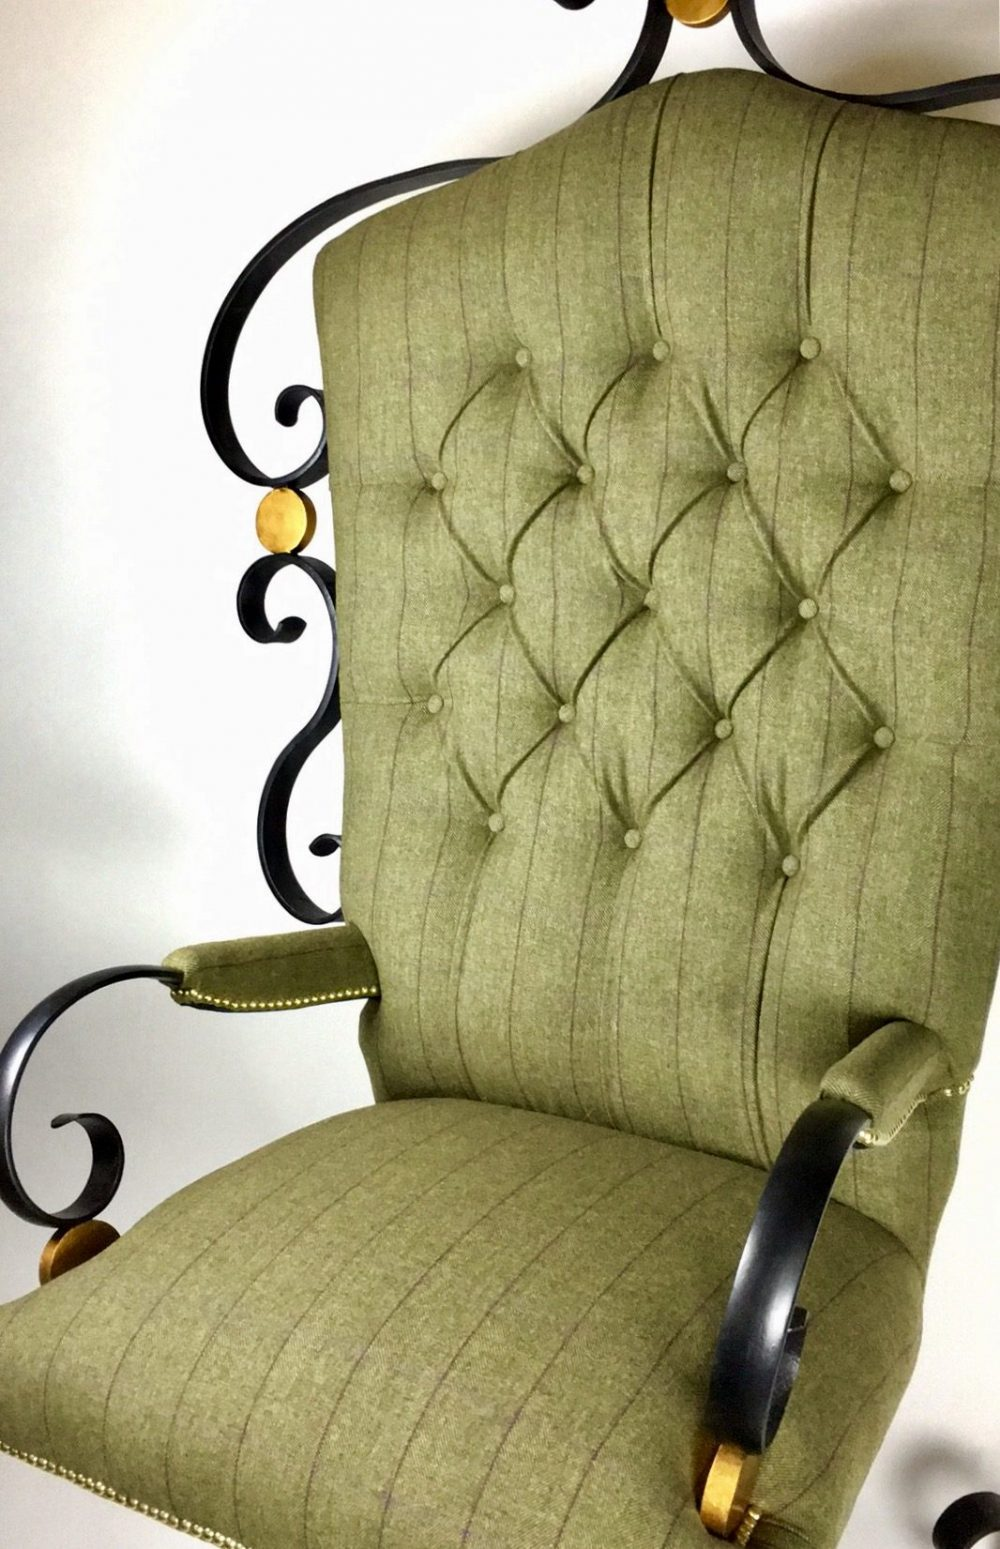 Full View Of Handcrafted Chair